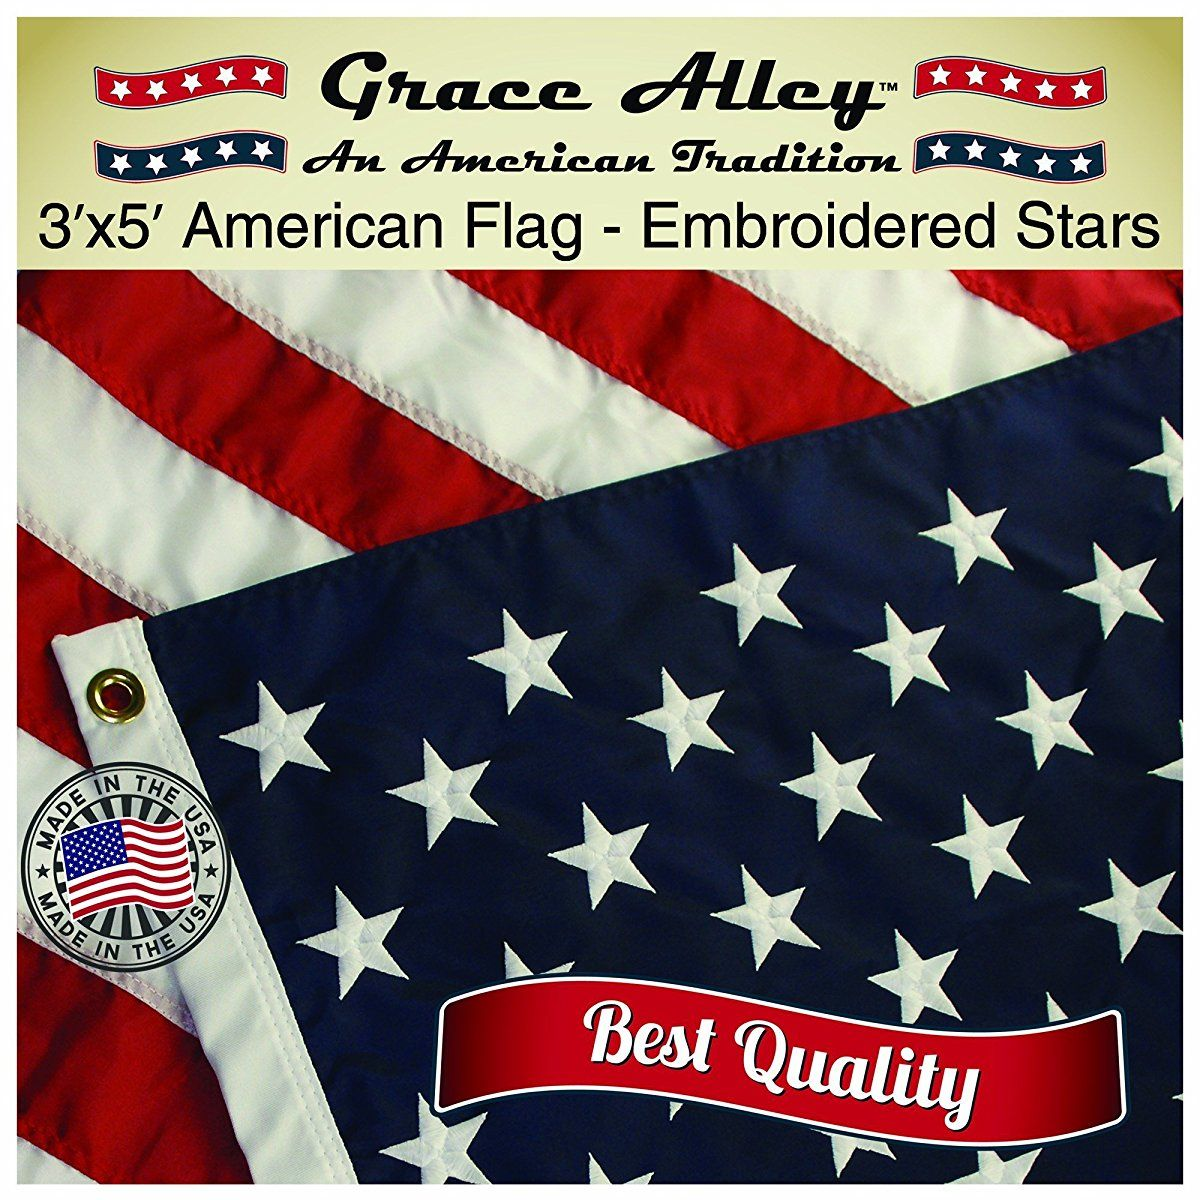 American Flag American Made By Grace Alley 3x5 Ft Us Flag Made In Usa Embroidered Stars And Sewn Stripes This American Flag Meets Us Flag Code American Flag Us